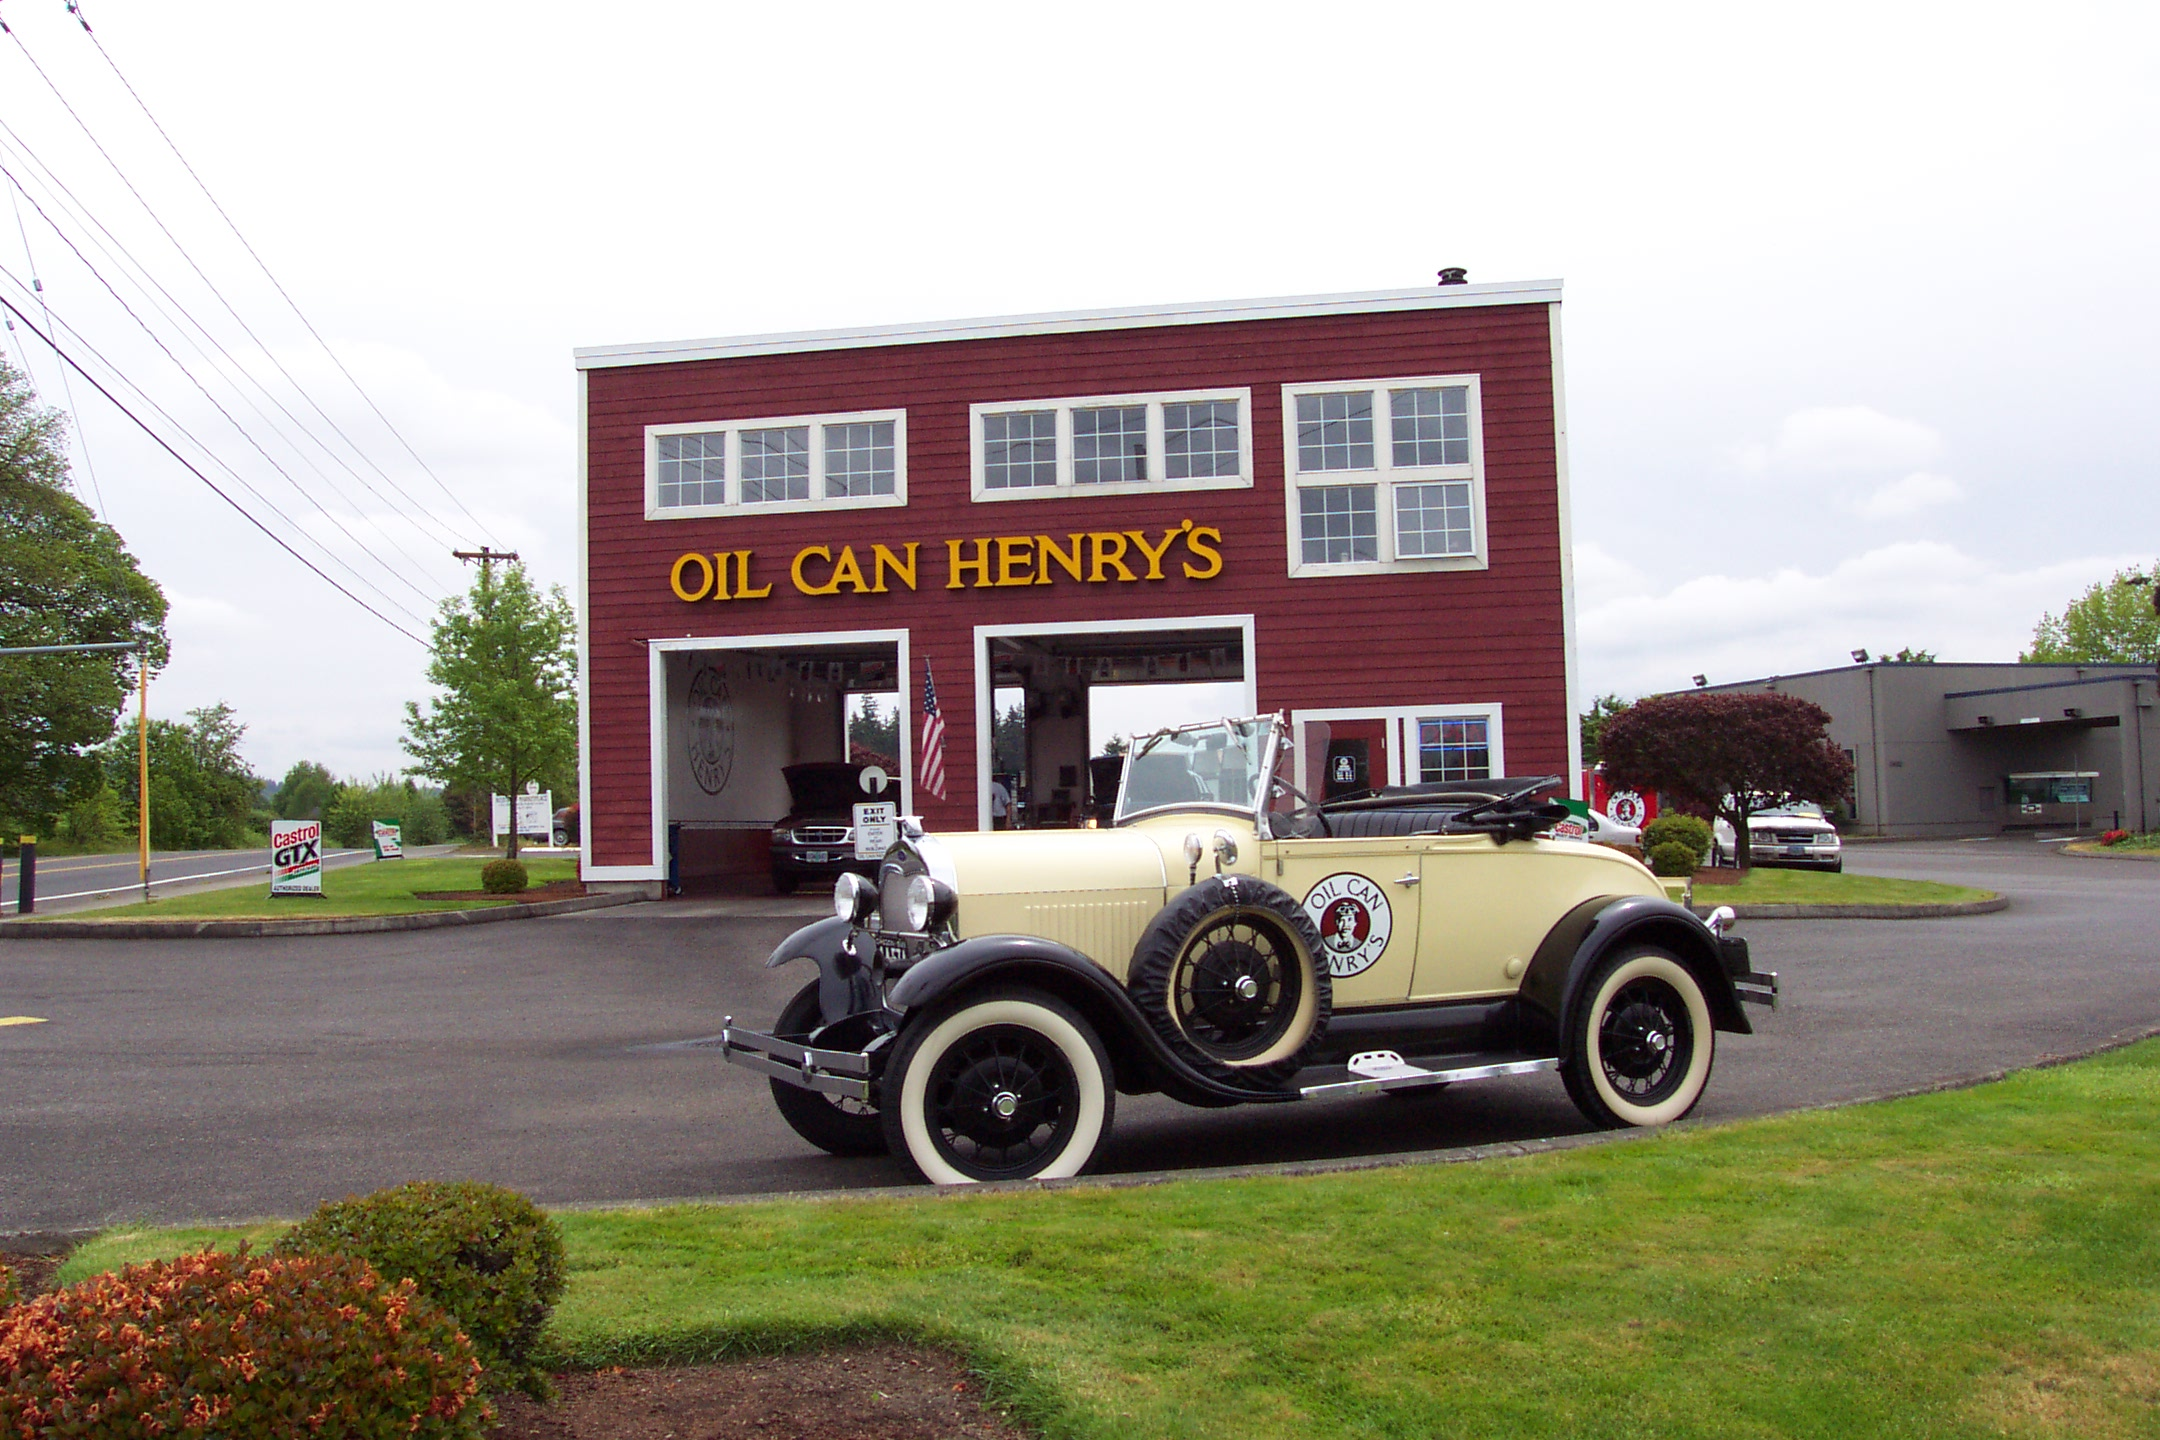 Oil Can Henry's in Milwaukie, Oregon